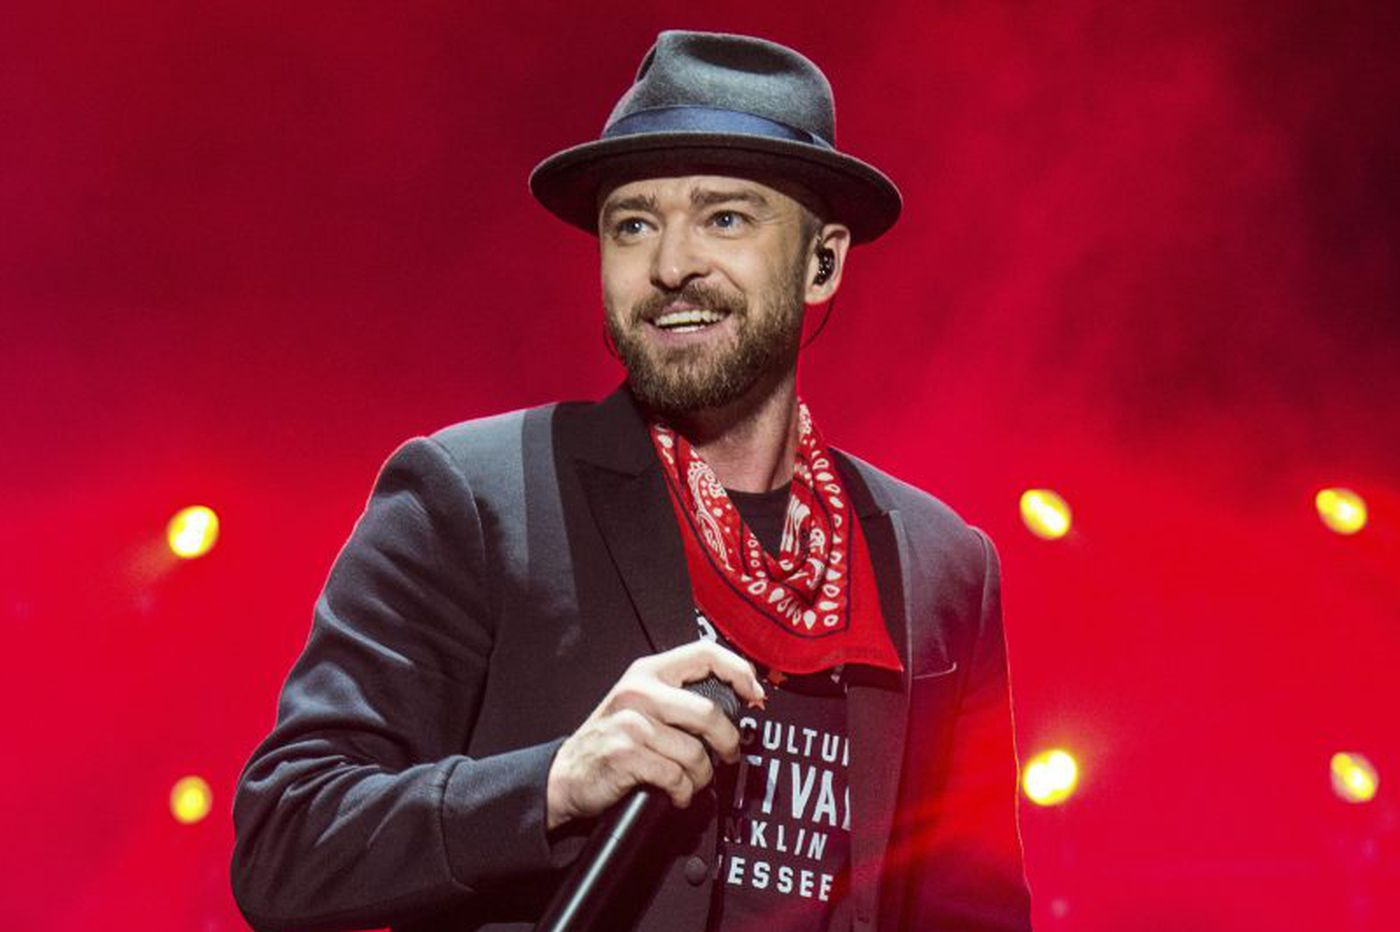 Justin Timberlake reschedules Wells Fargo Center performance due to vocal cord injury